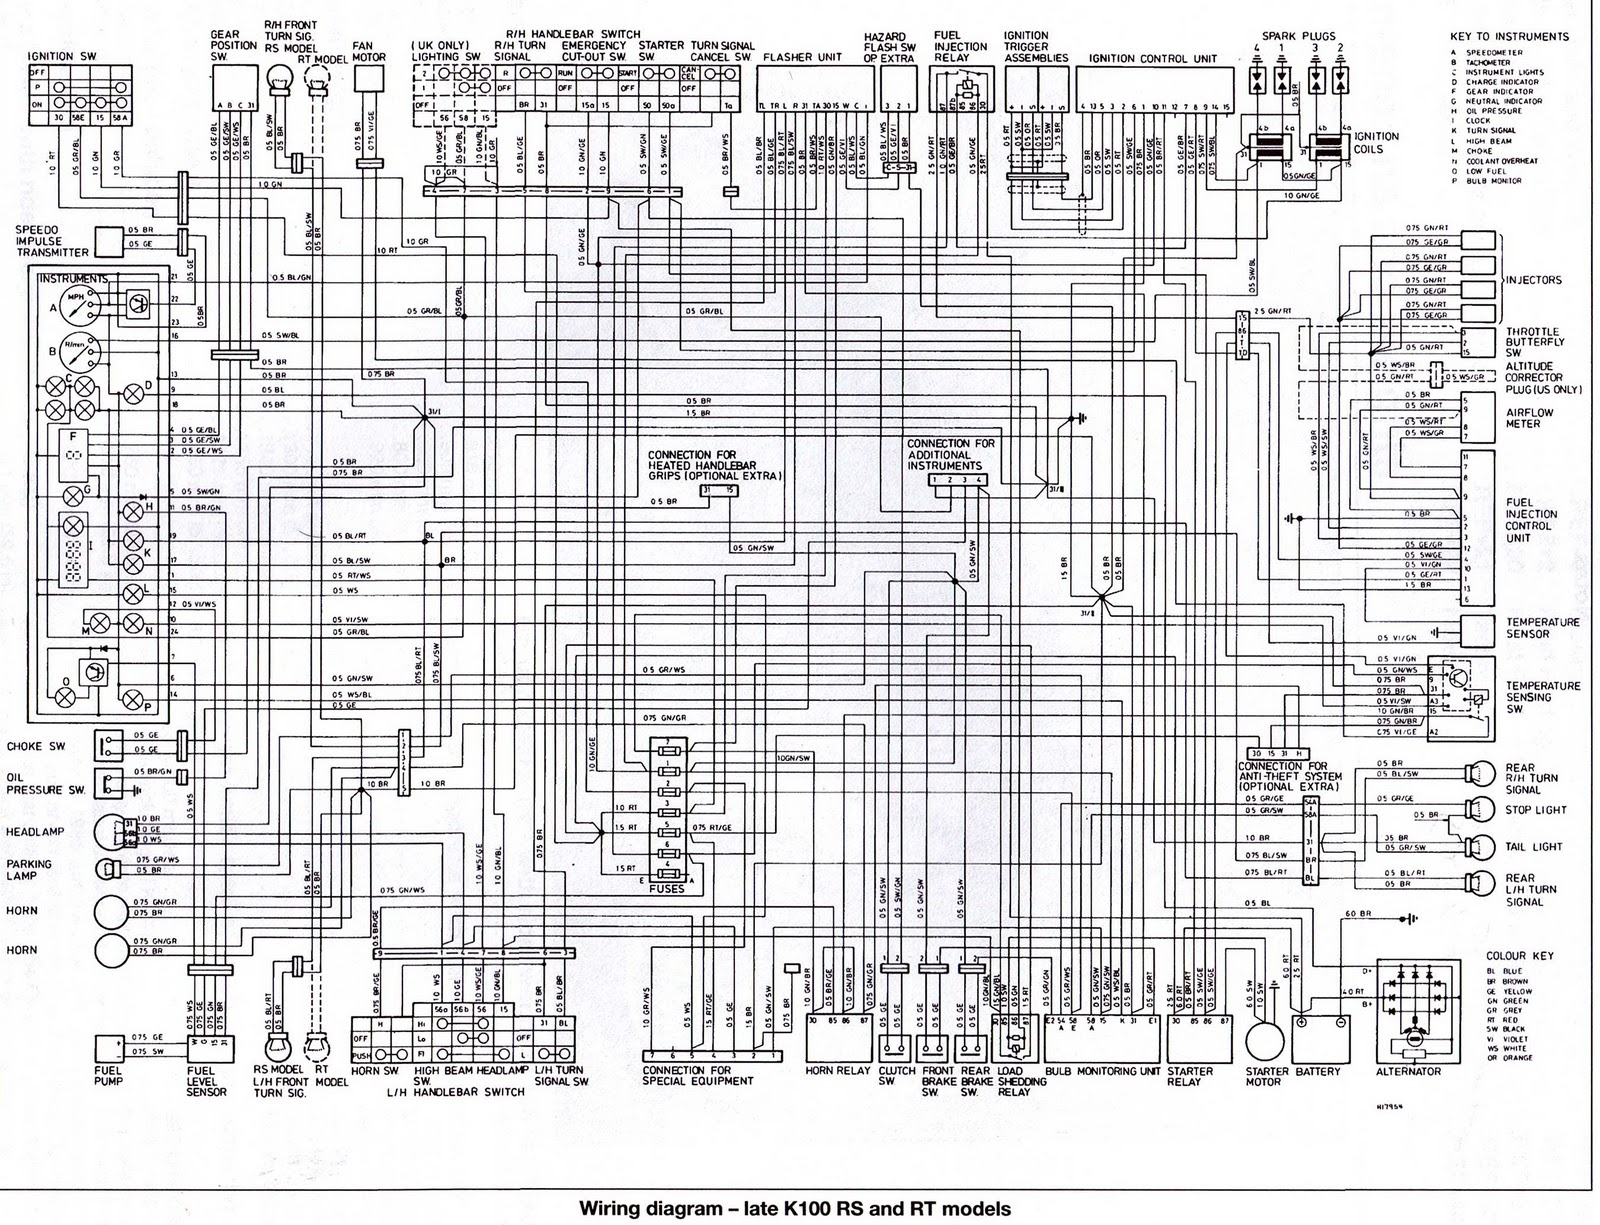 bmw z4 wiring harness diagram - best wiring diagrams bell-follow -  bell-follow.ekoegur.es  ekoegur.es